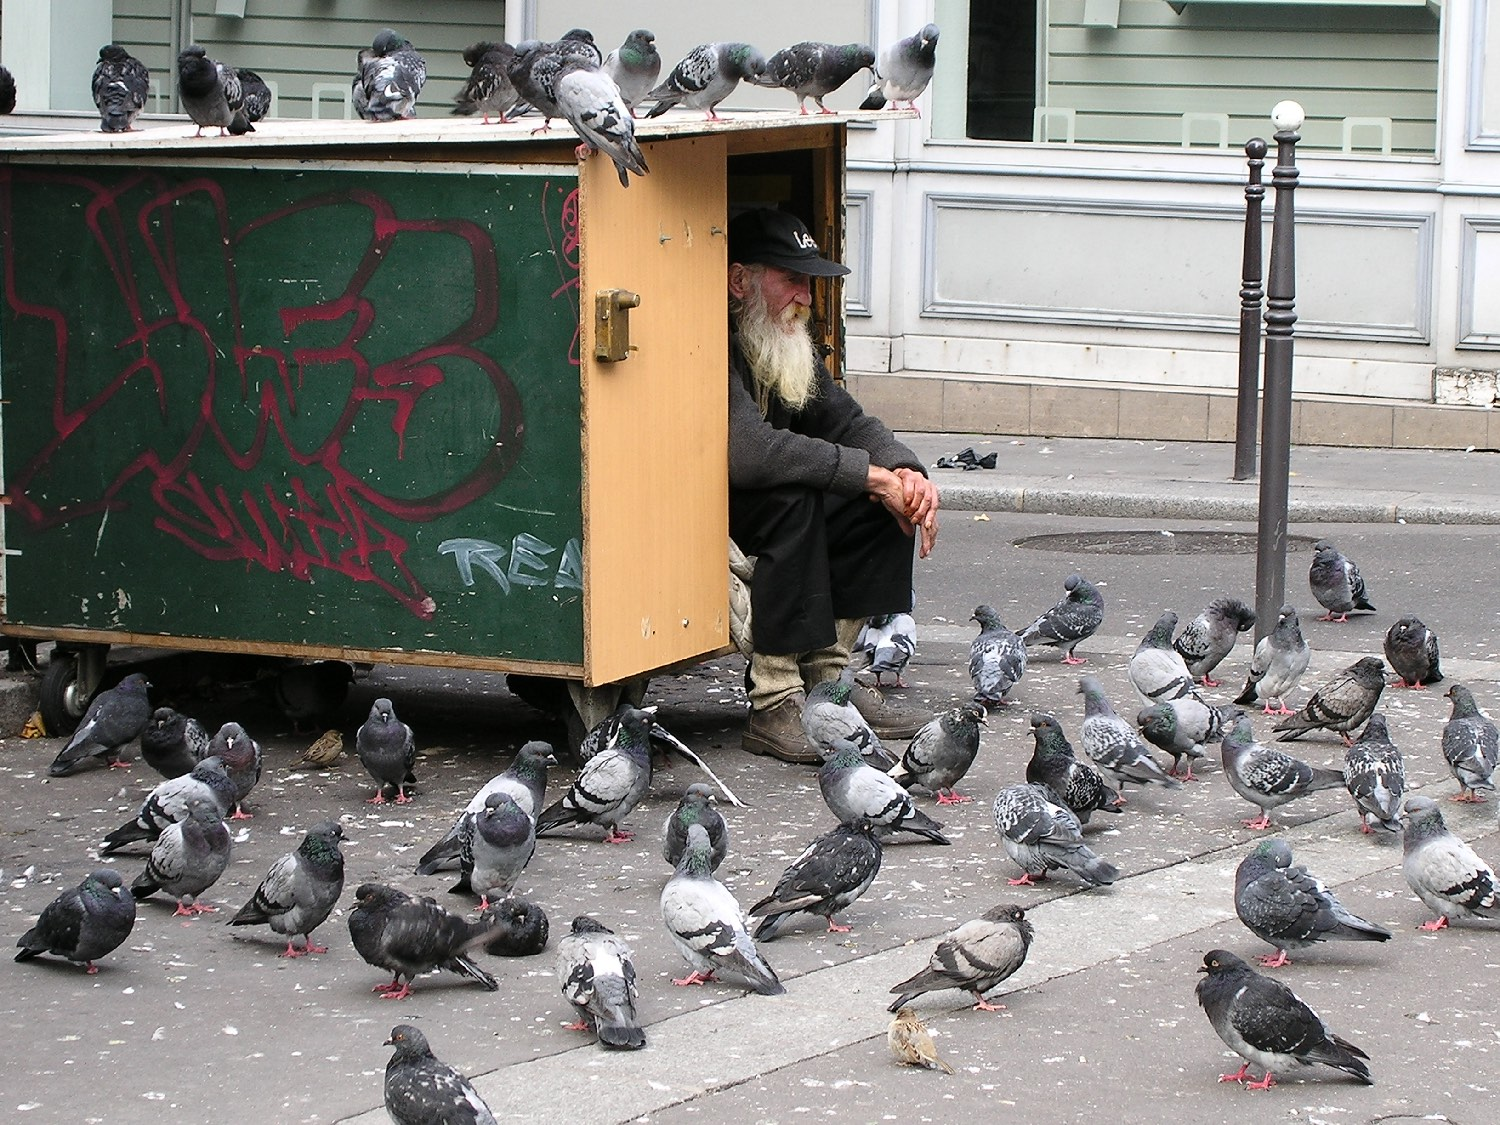 Homeless with pigeons | Paris | streetphotography | ©sandrine cohen